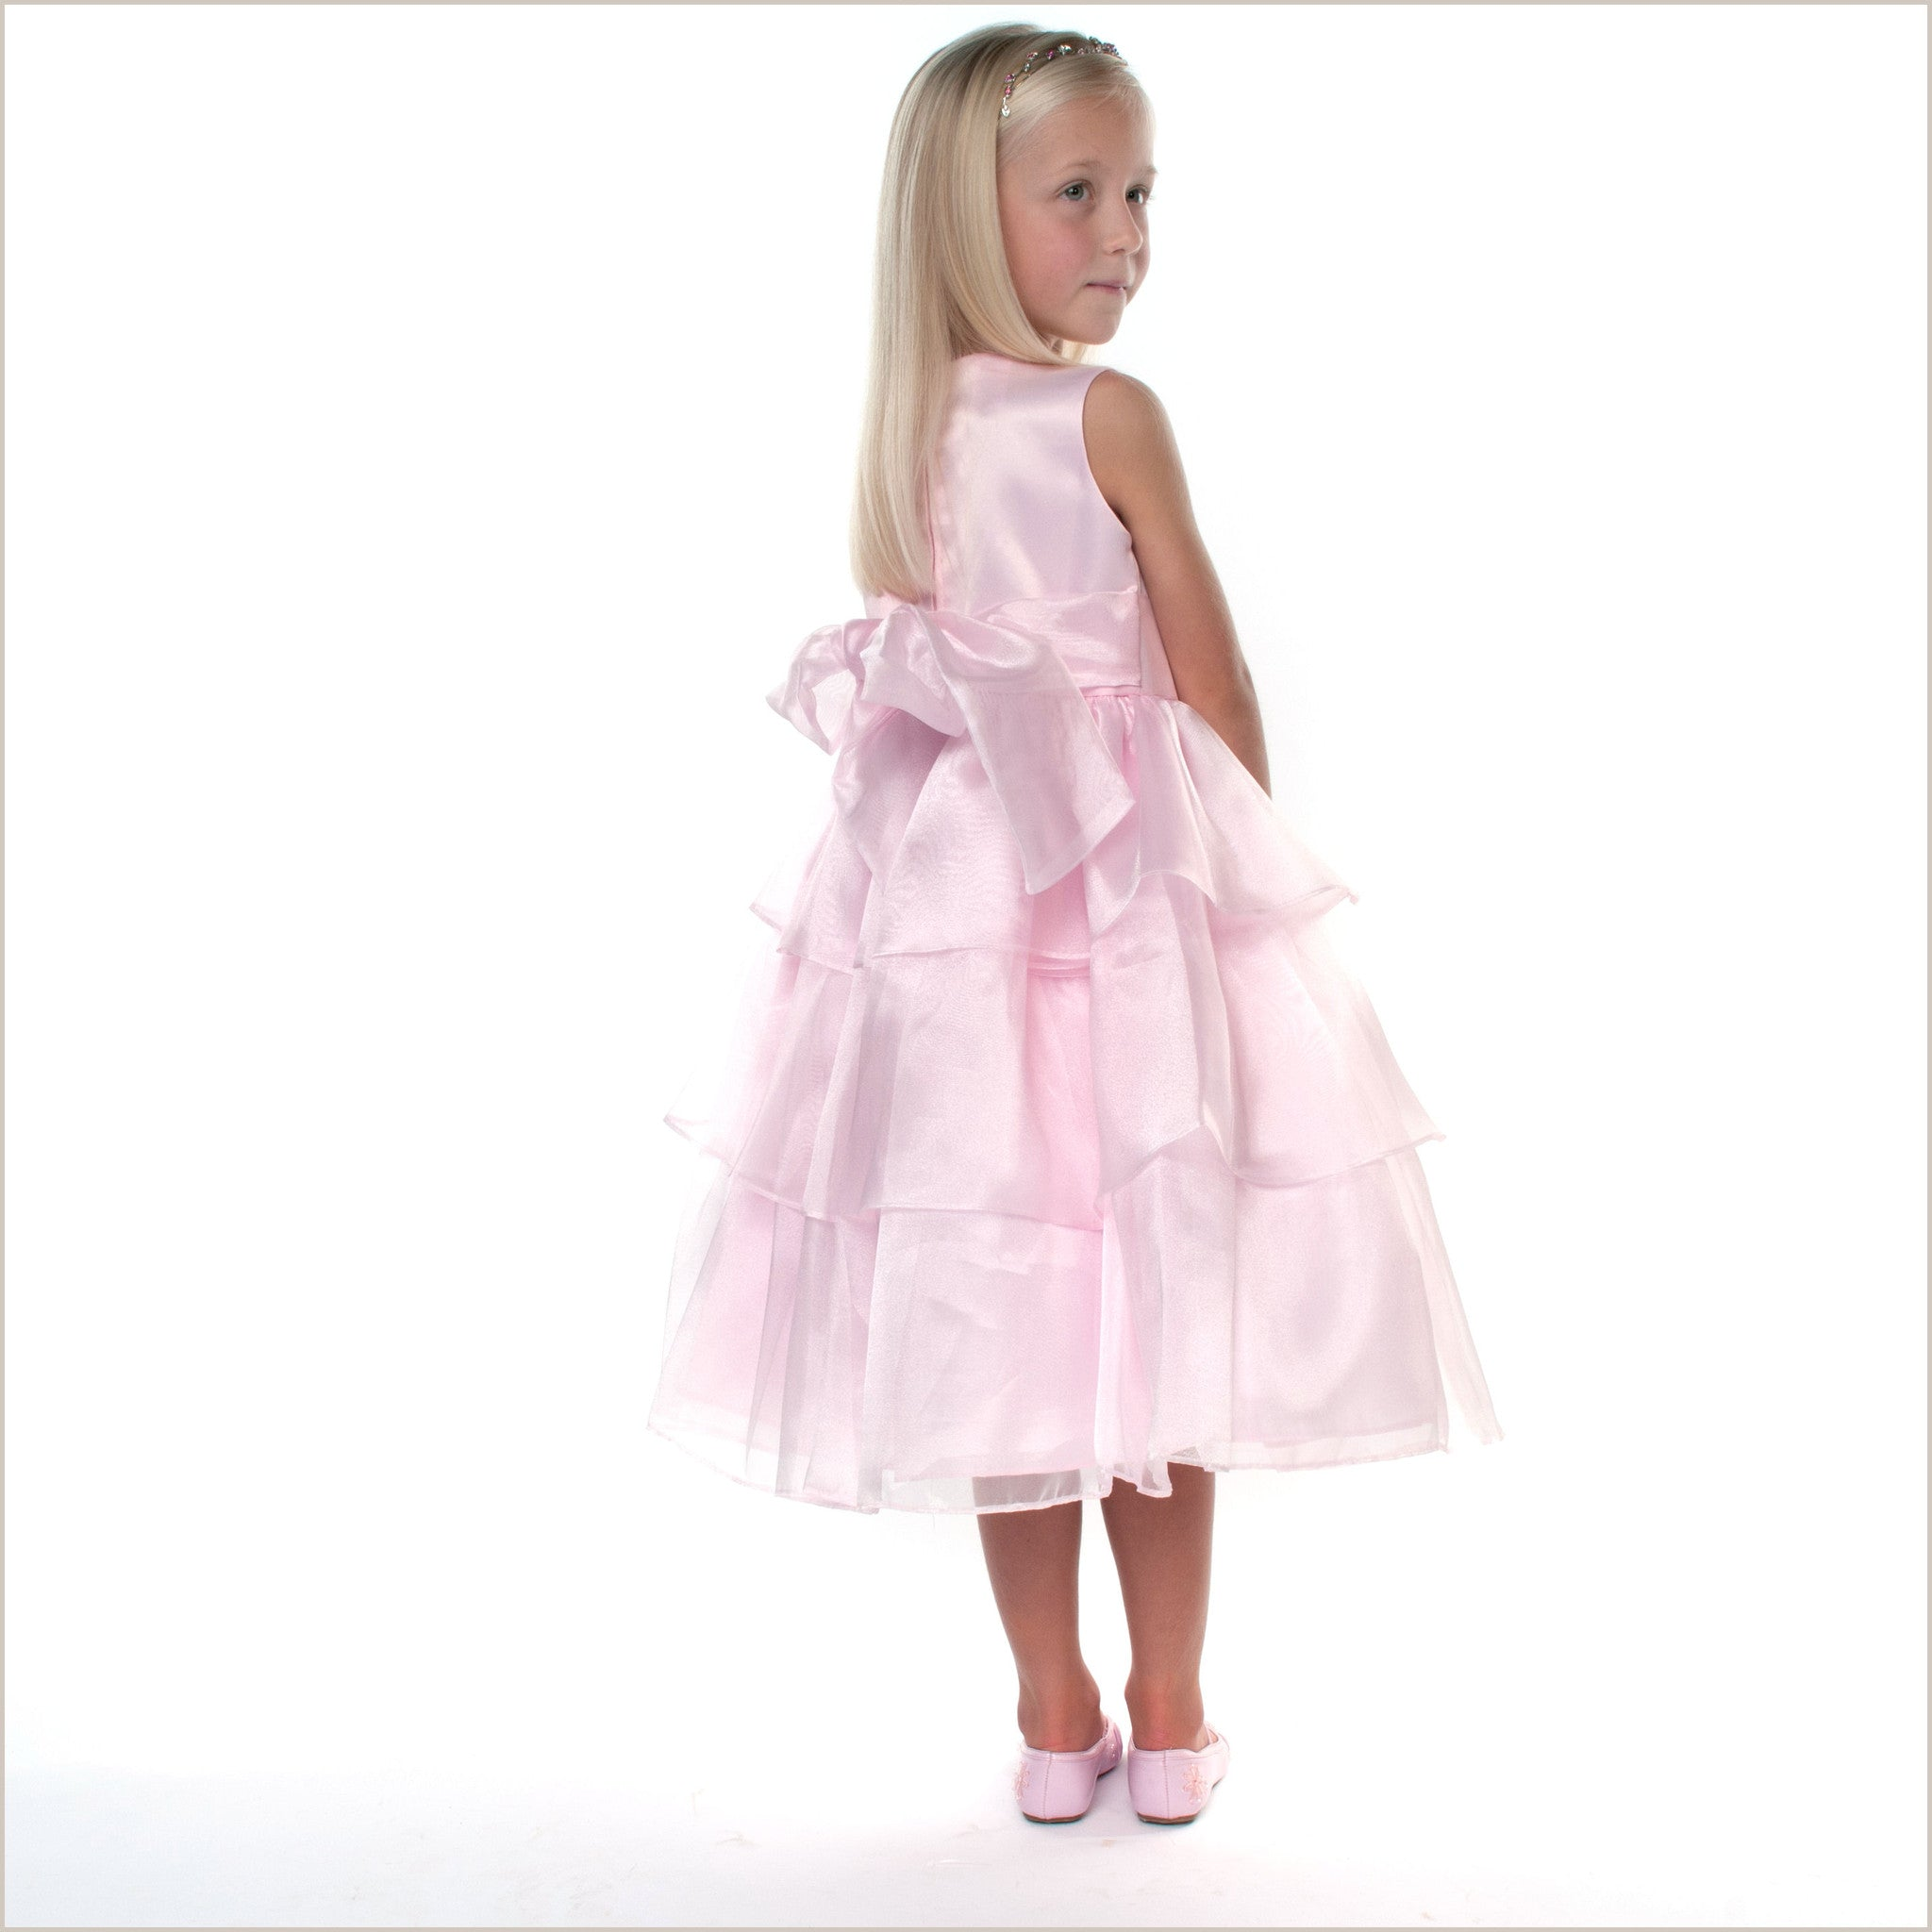 Baby Pink Marisole Flower Girl Dress with Tiered Skirt